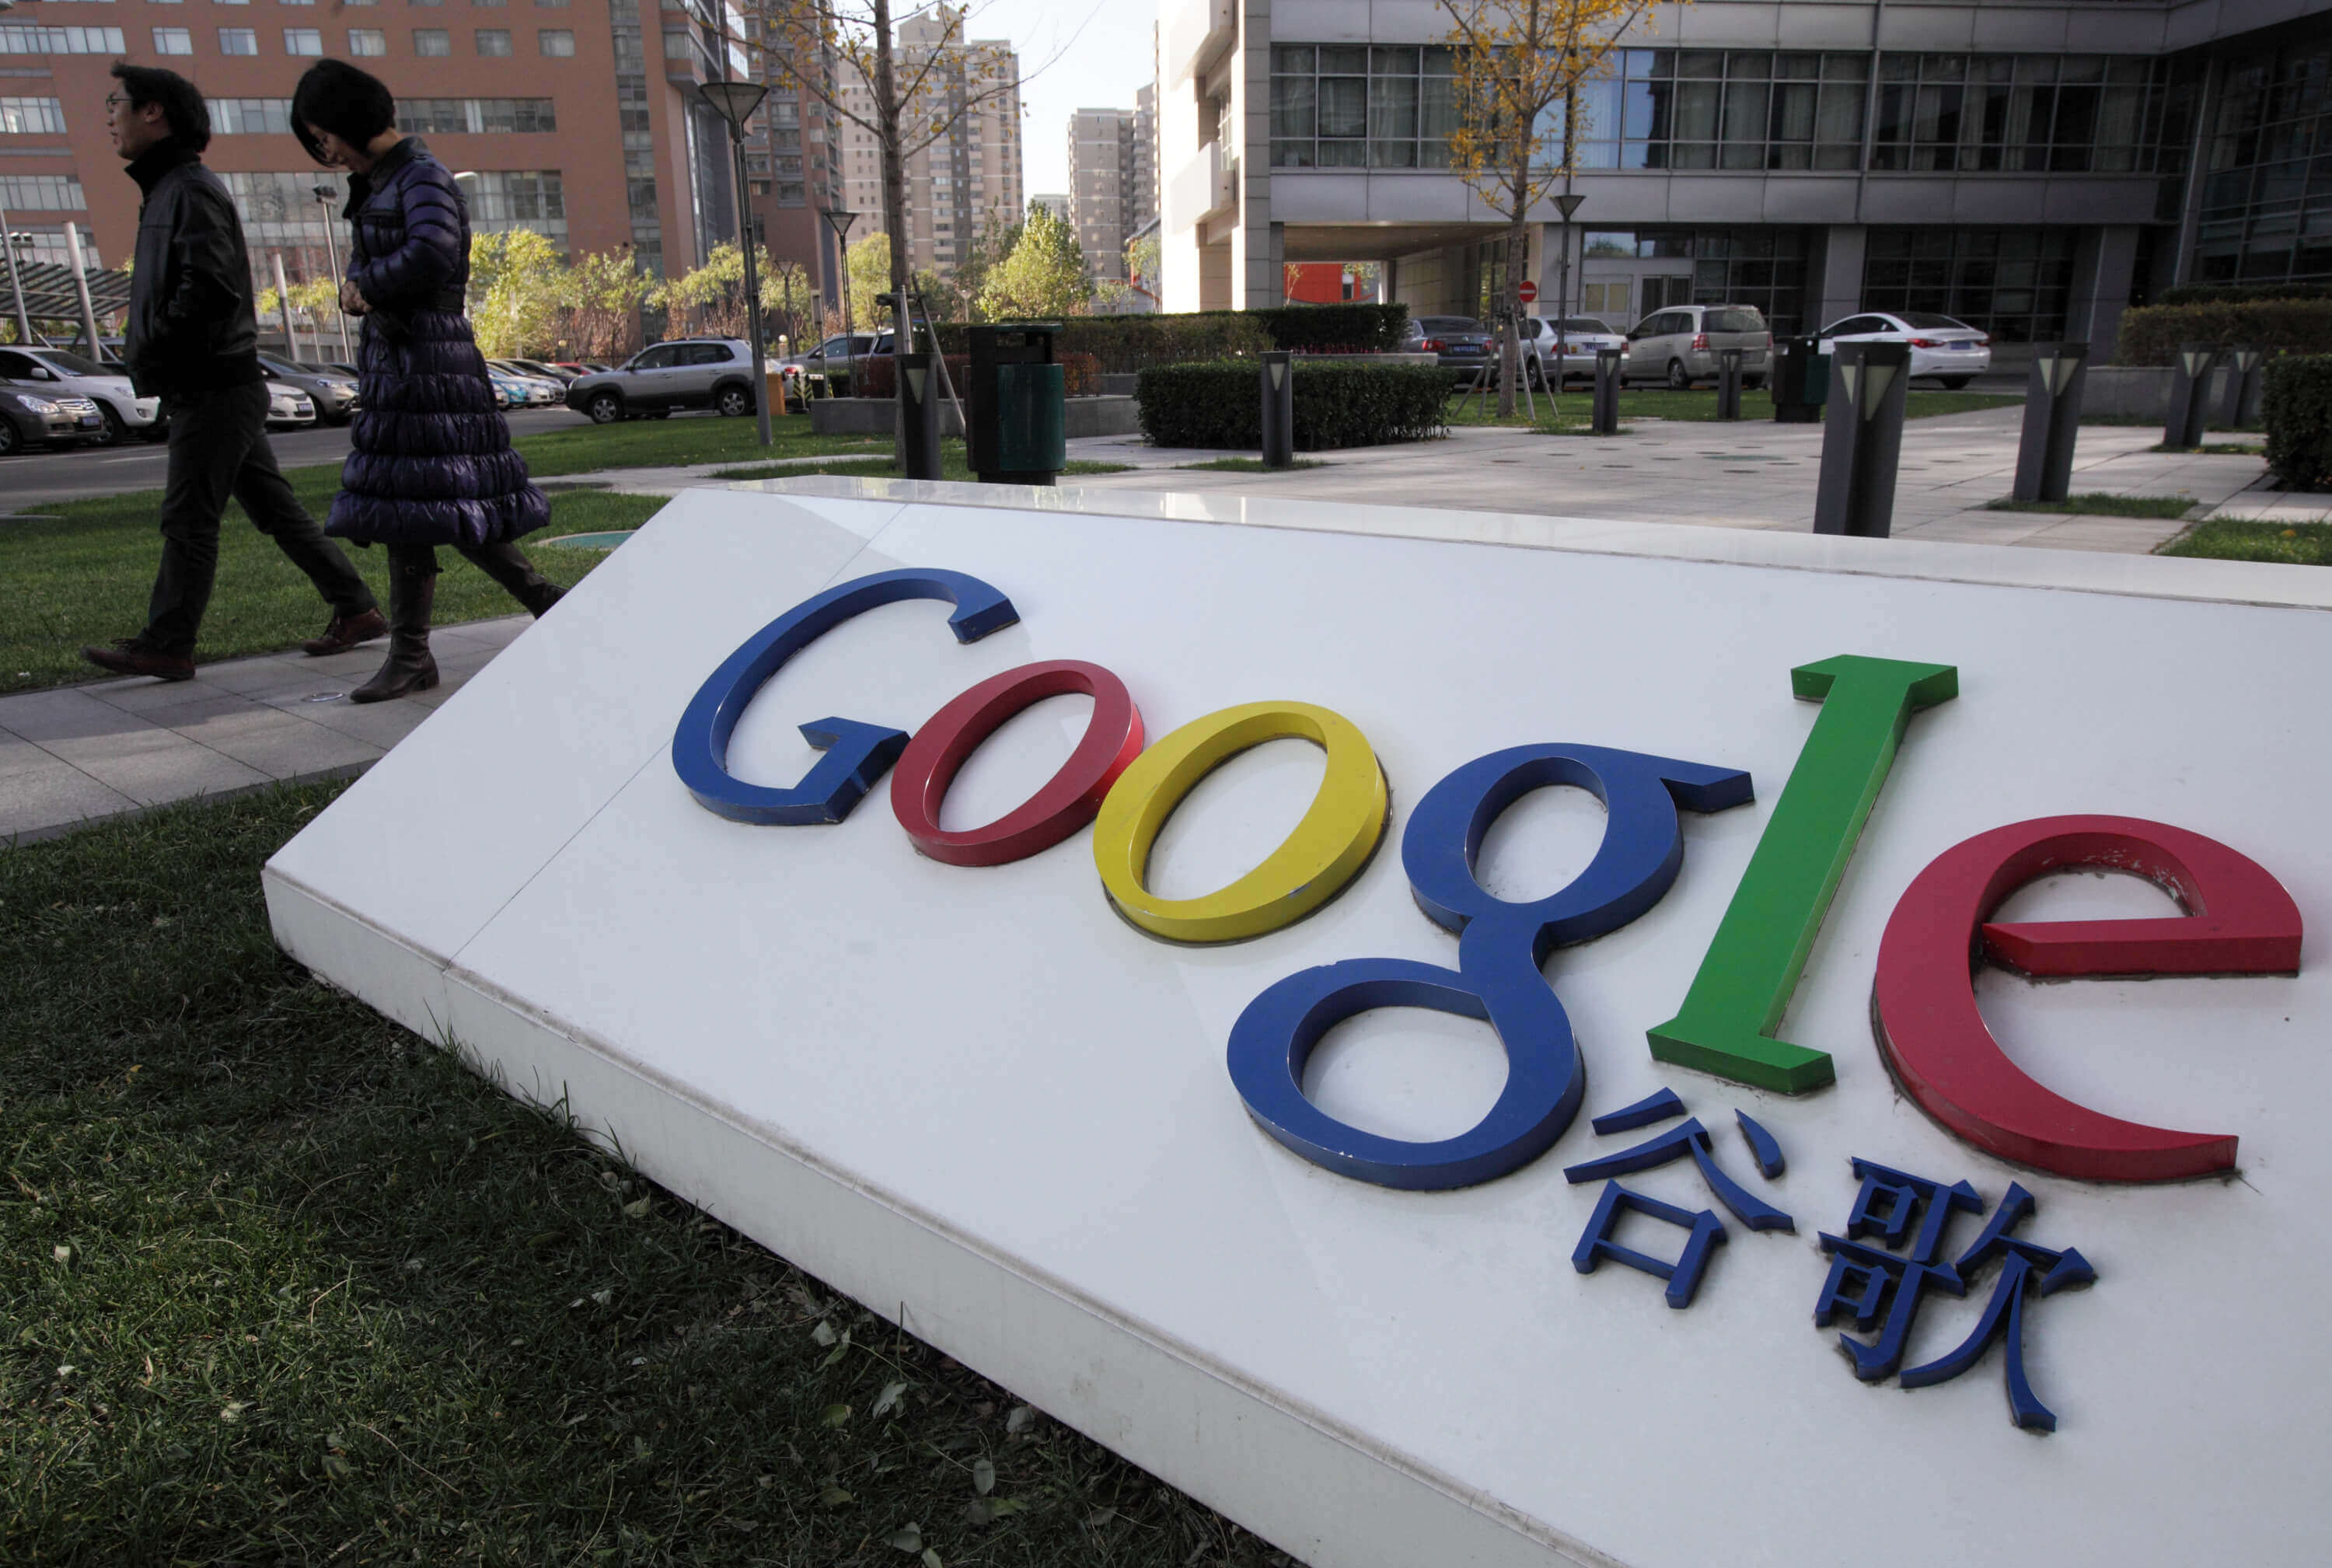 China's Great Firewall For Google Kills Internet freedom